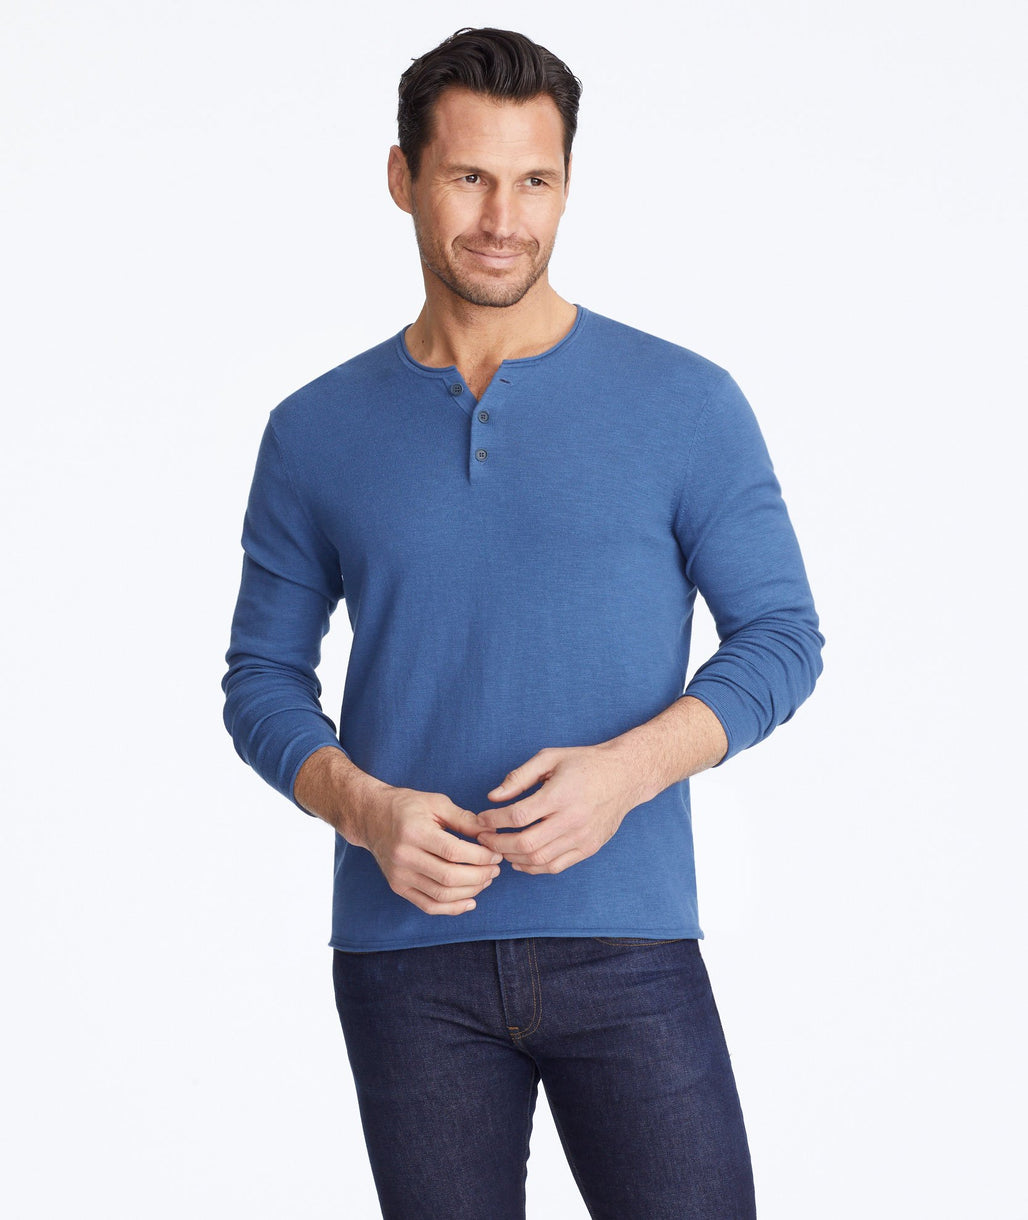 Model wearing a Navy Henley Sweater